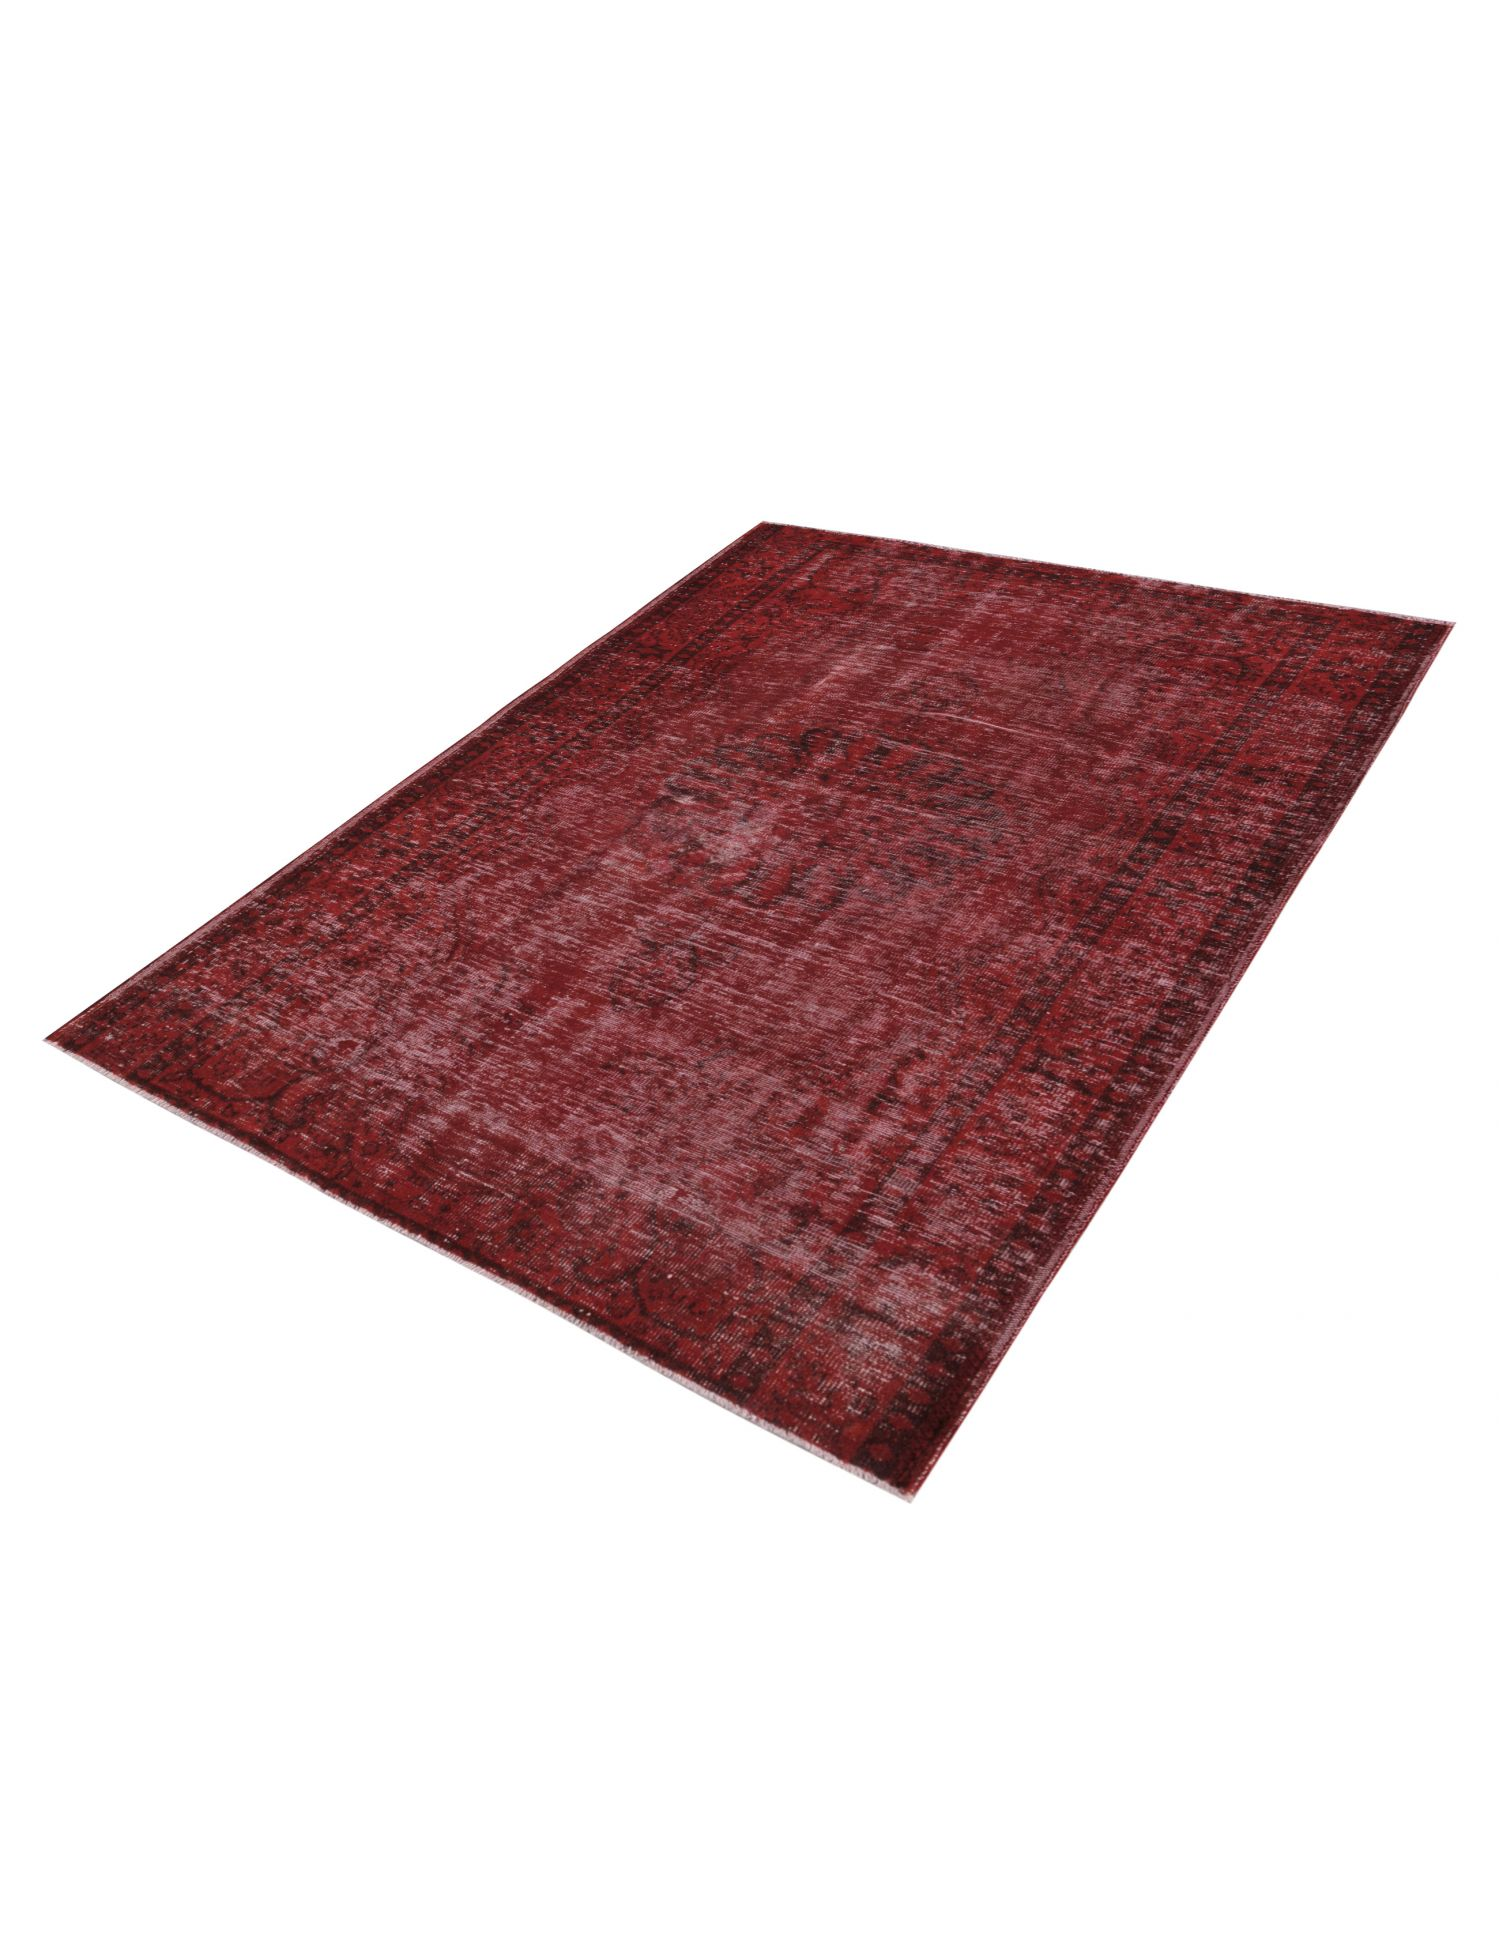 Overdyed Carpet  red <br/>260 x 190 cm